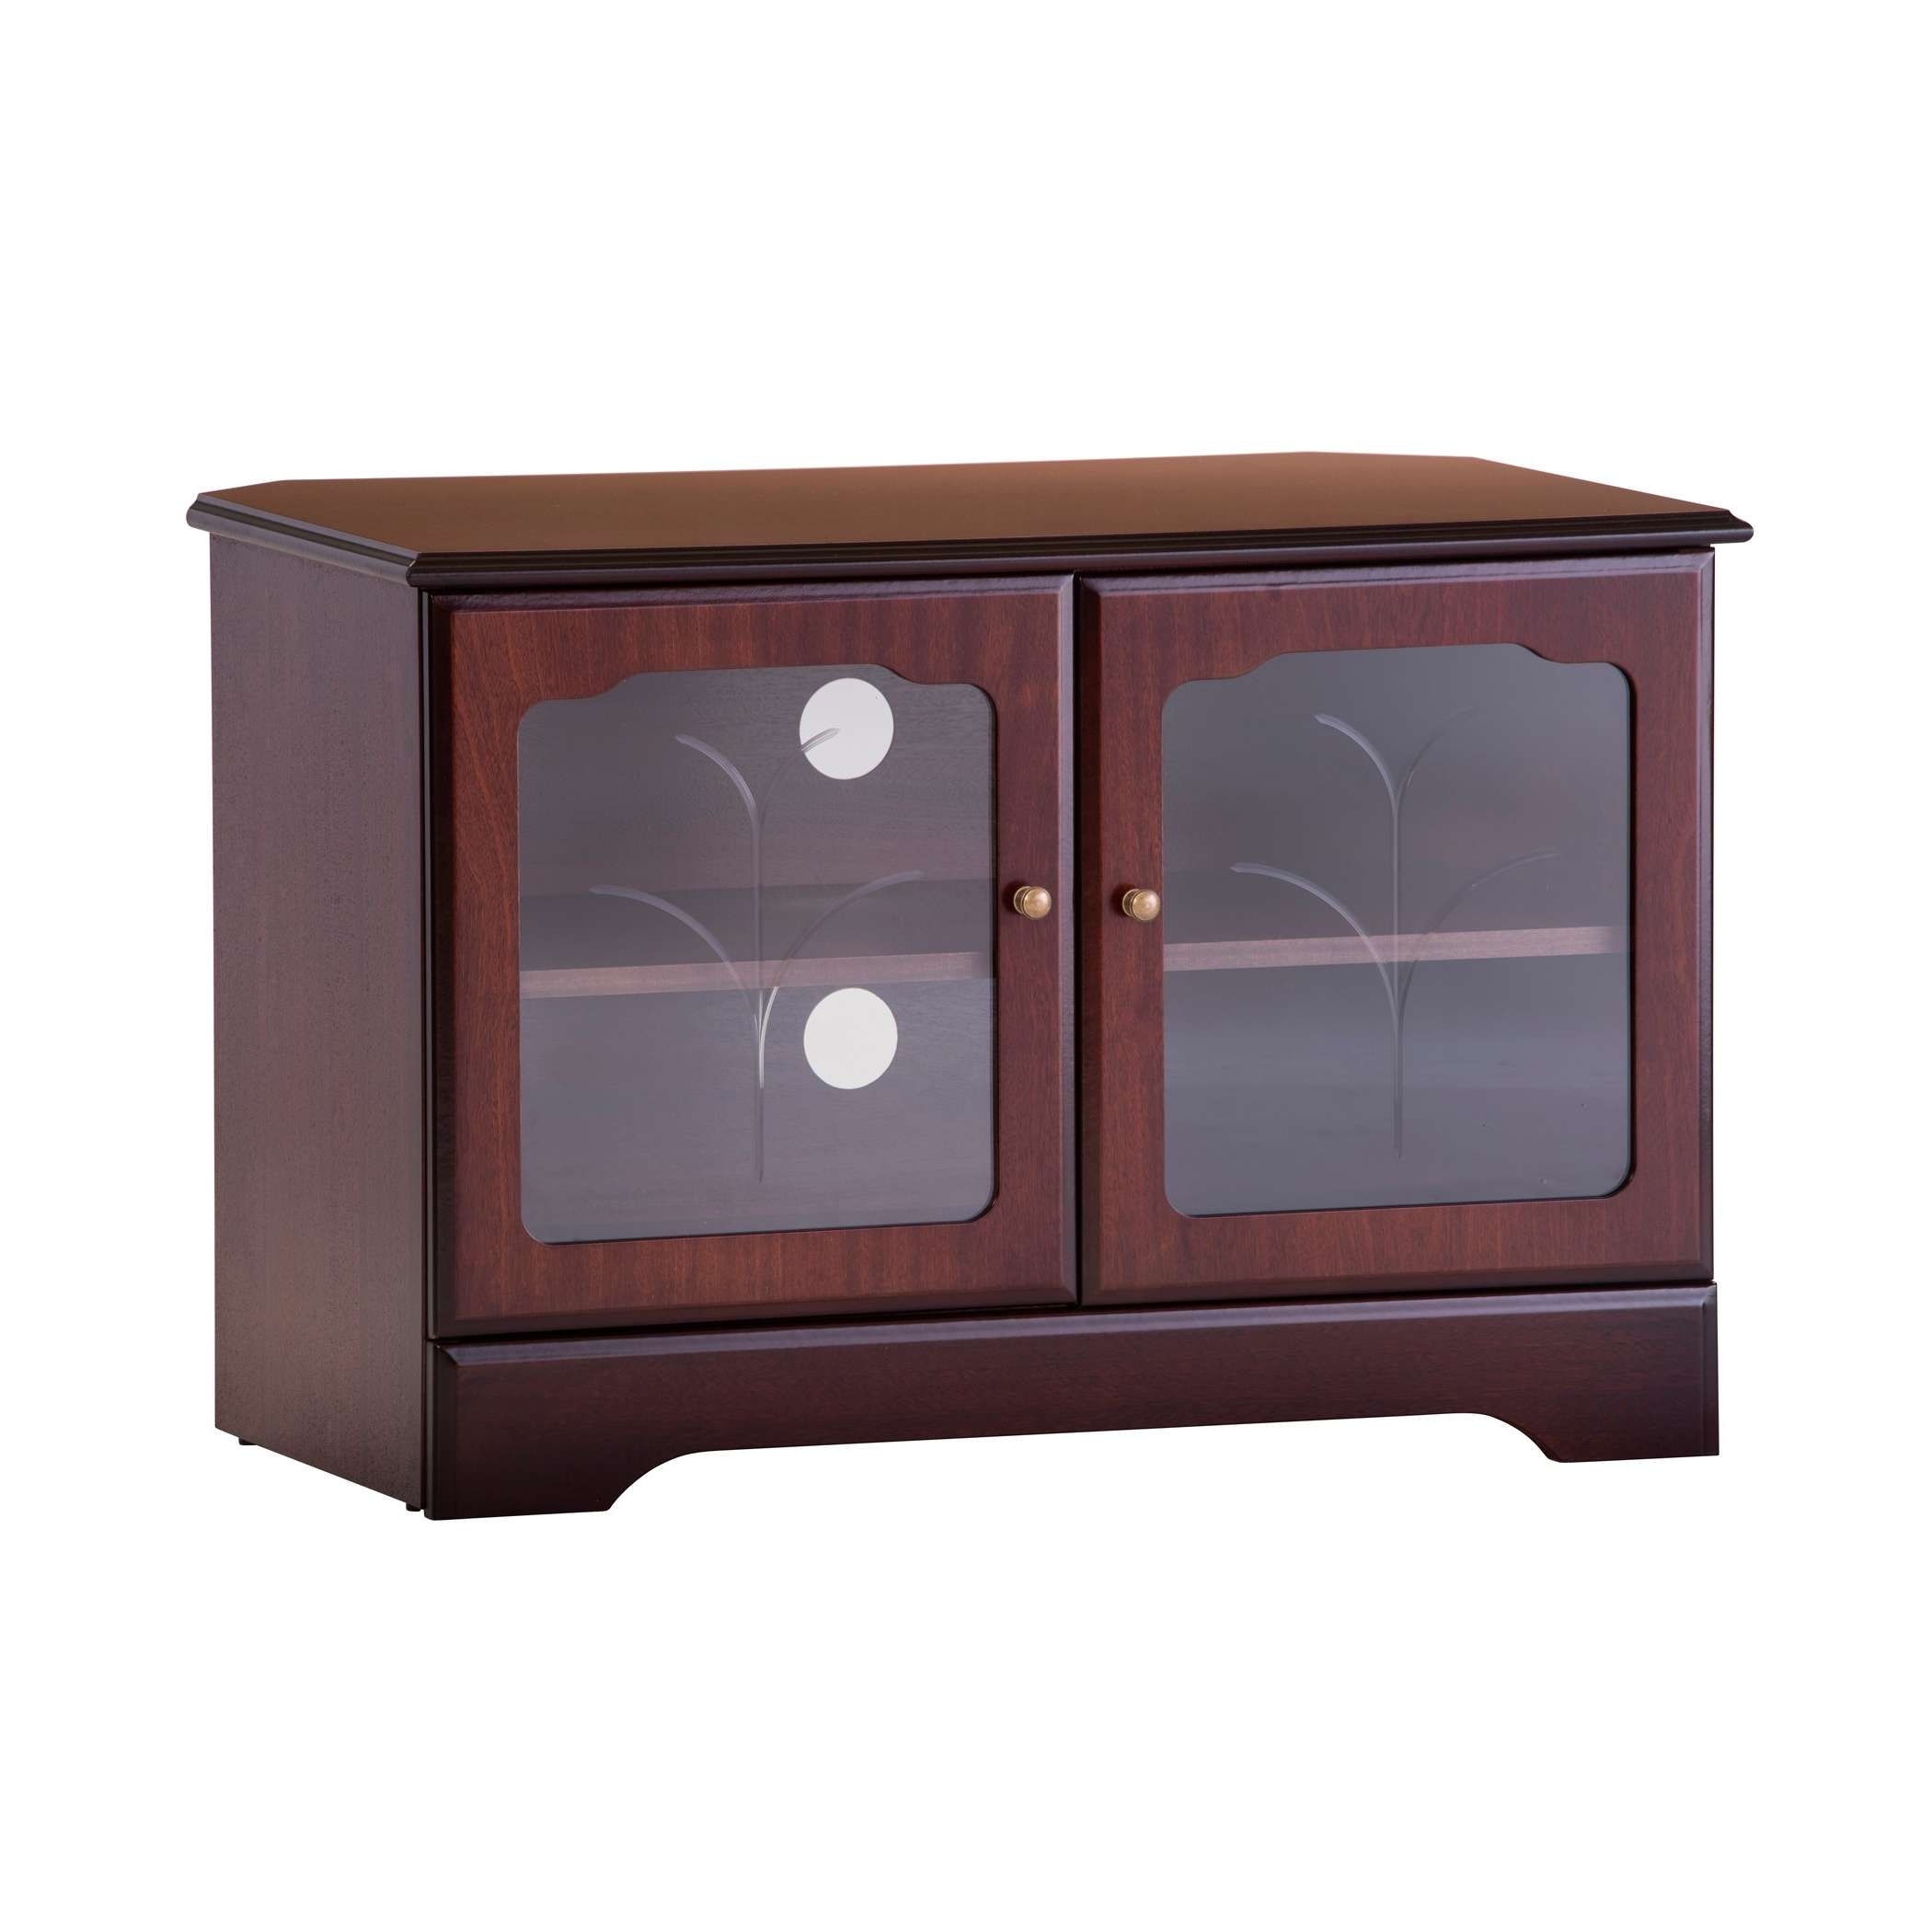 Corner Tv Stand In Mahogany Or Teak | Gola Furniture Uk With Regard To Mahogany Tv Stands (View 7 of 15)